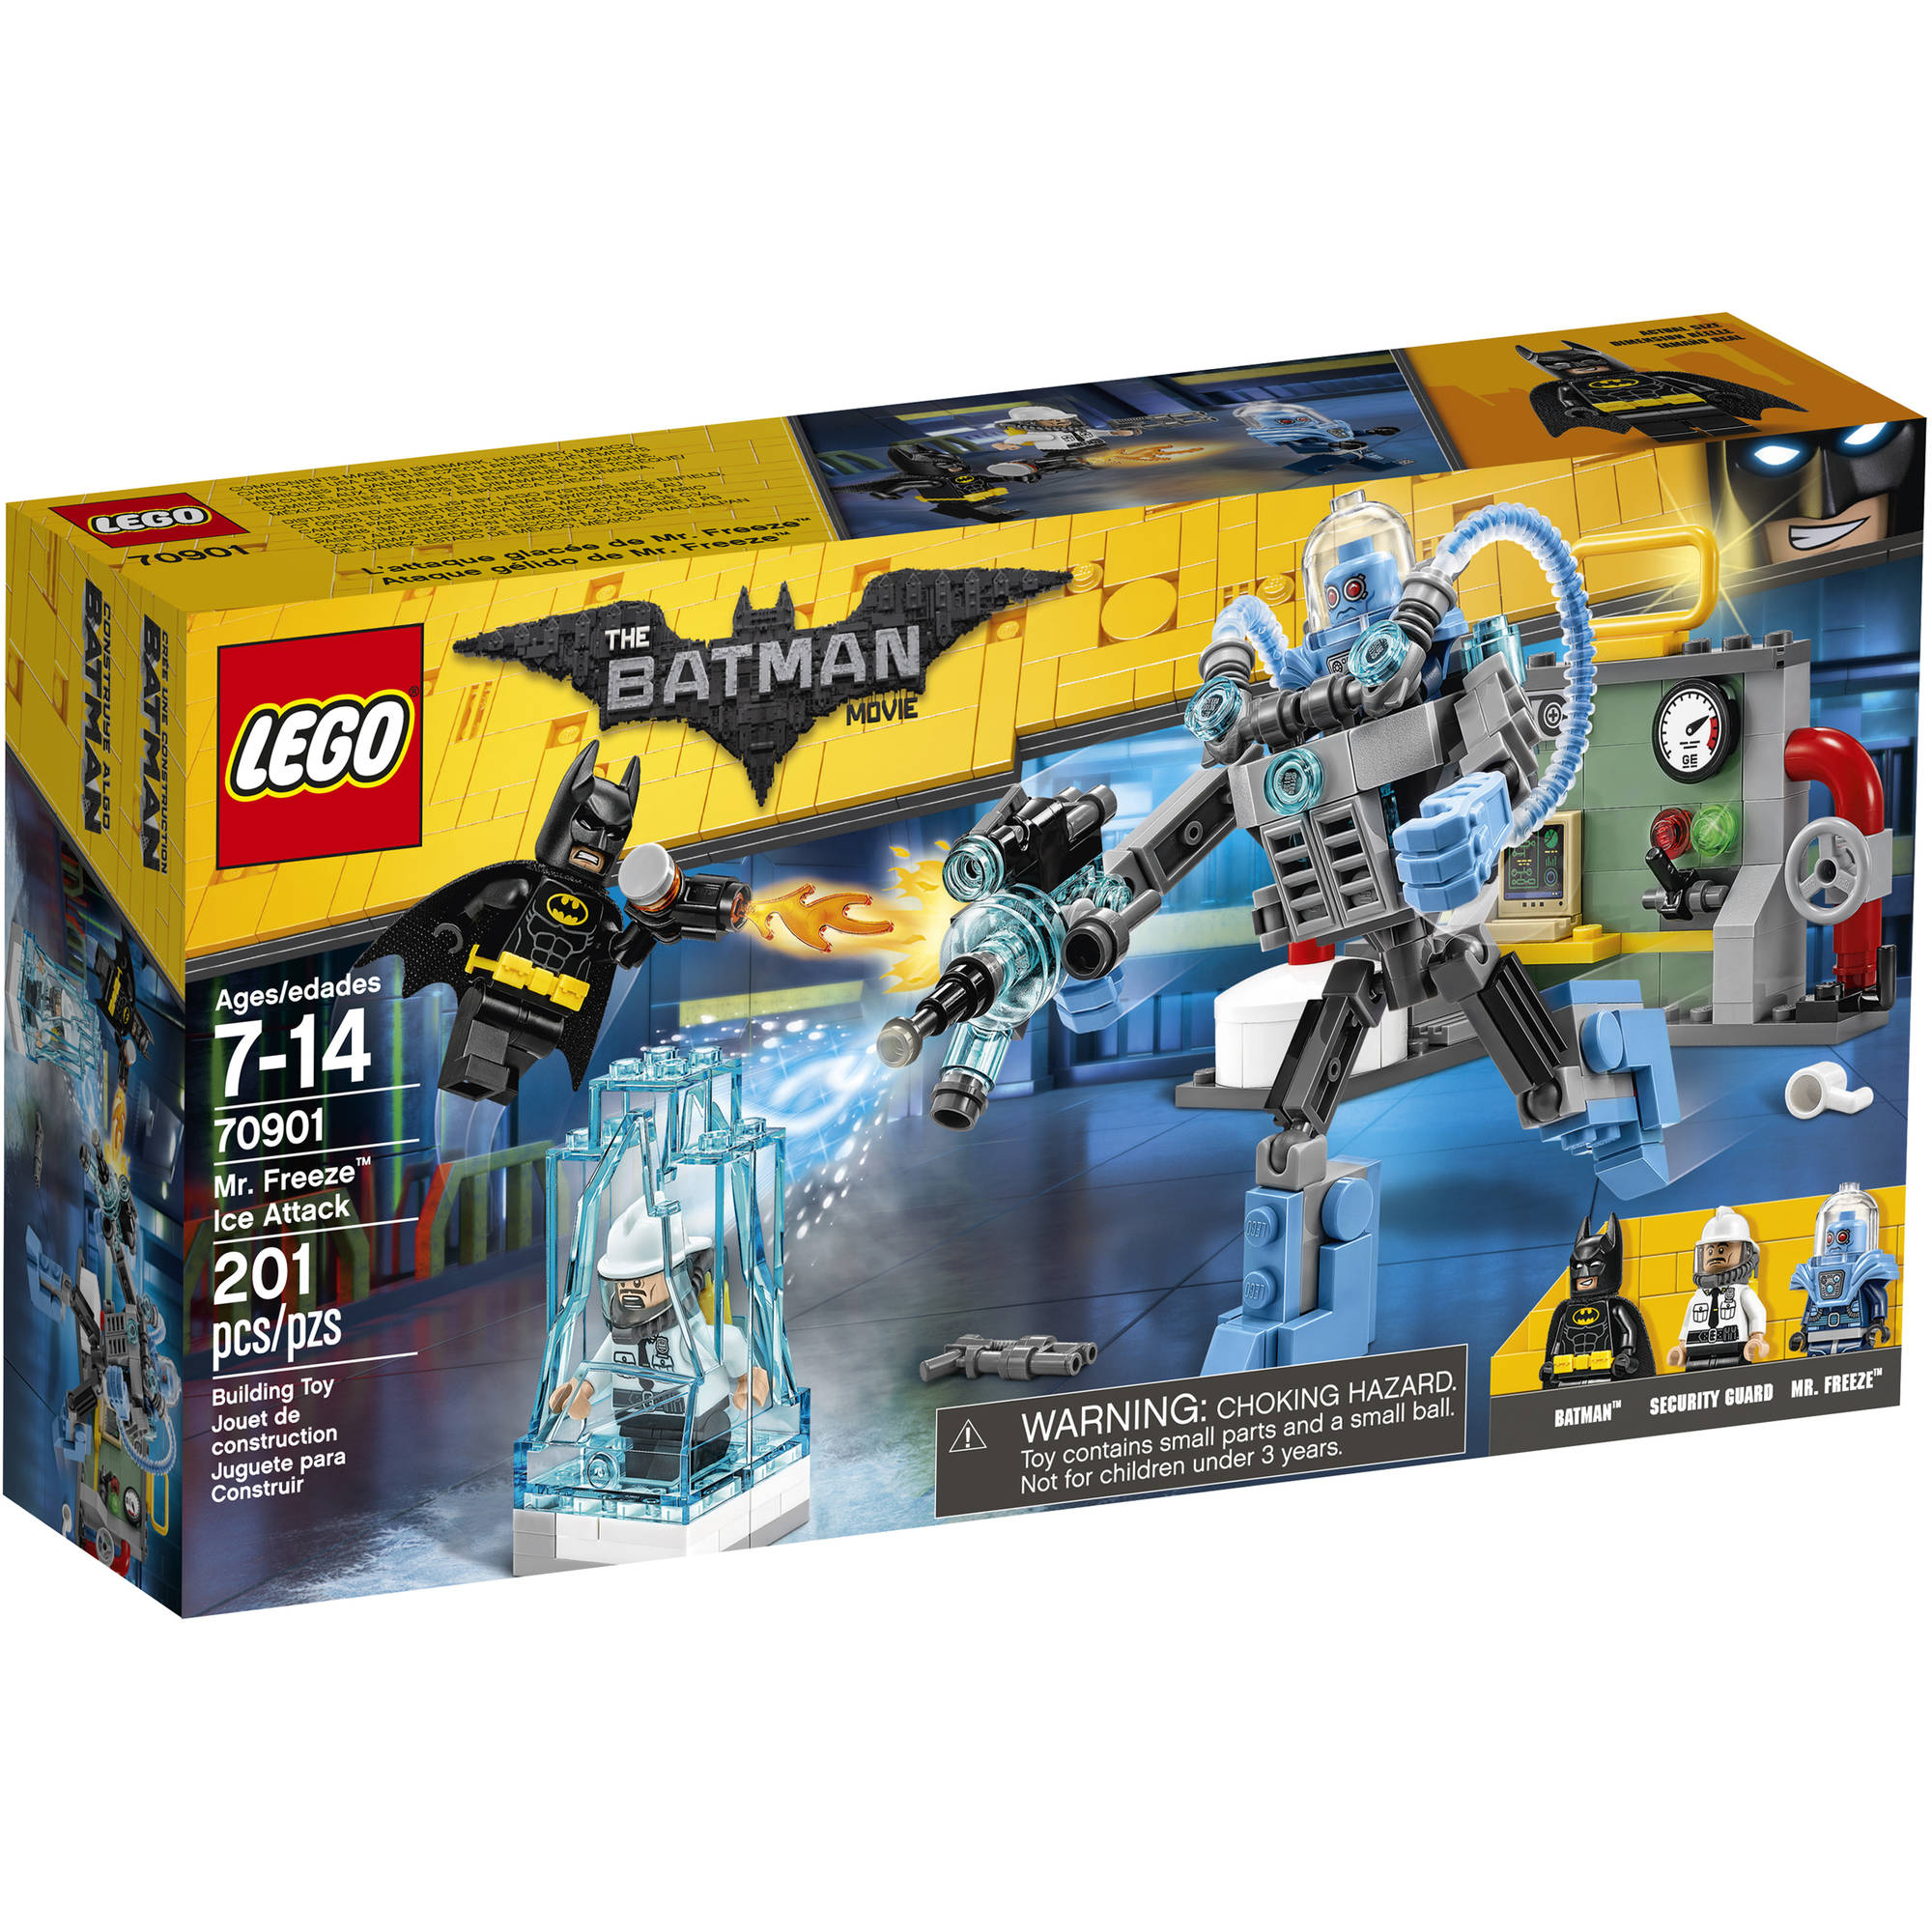 The Lego Batman Movie Mr. Freeze Ice Attack (70901) by LEGO Systems, Inc.